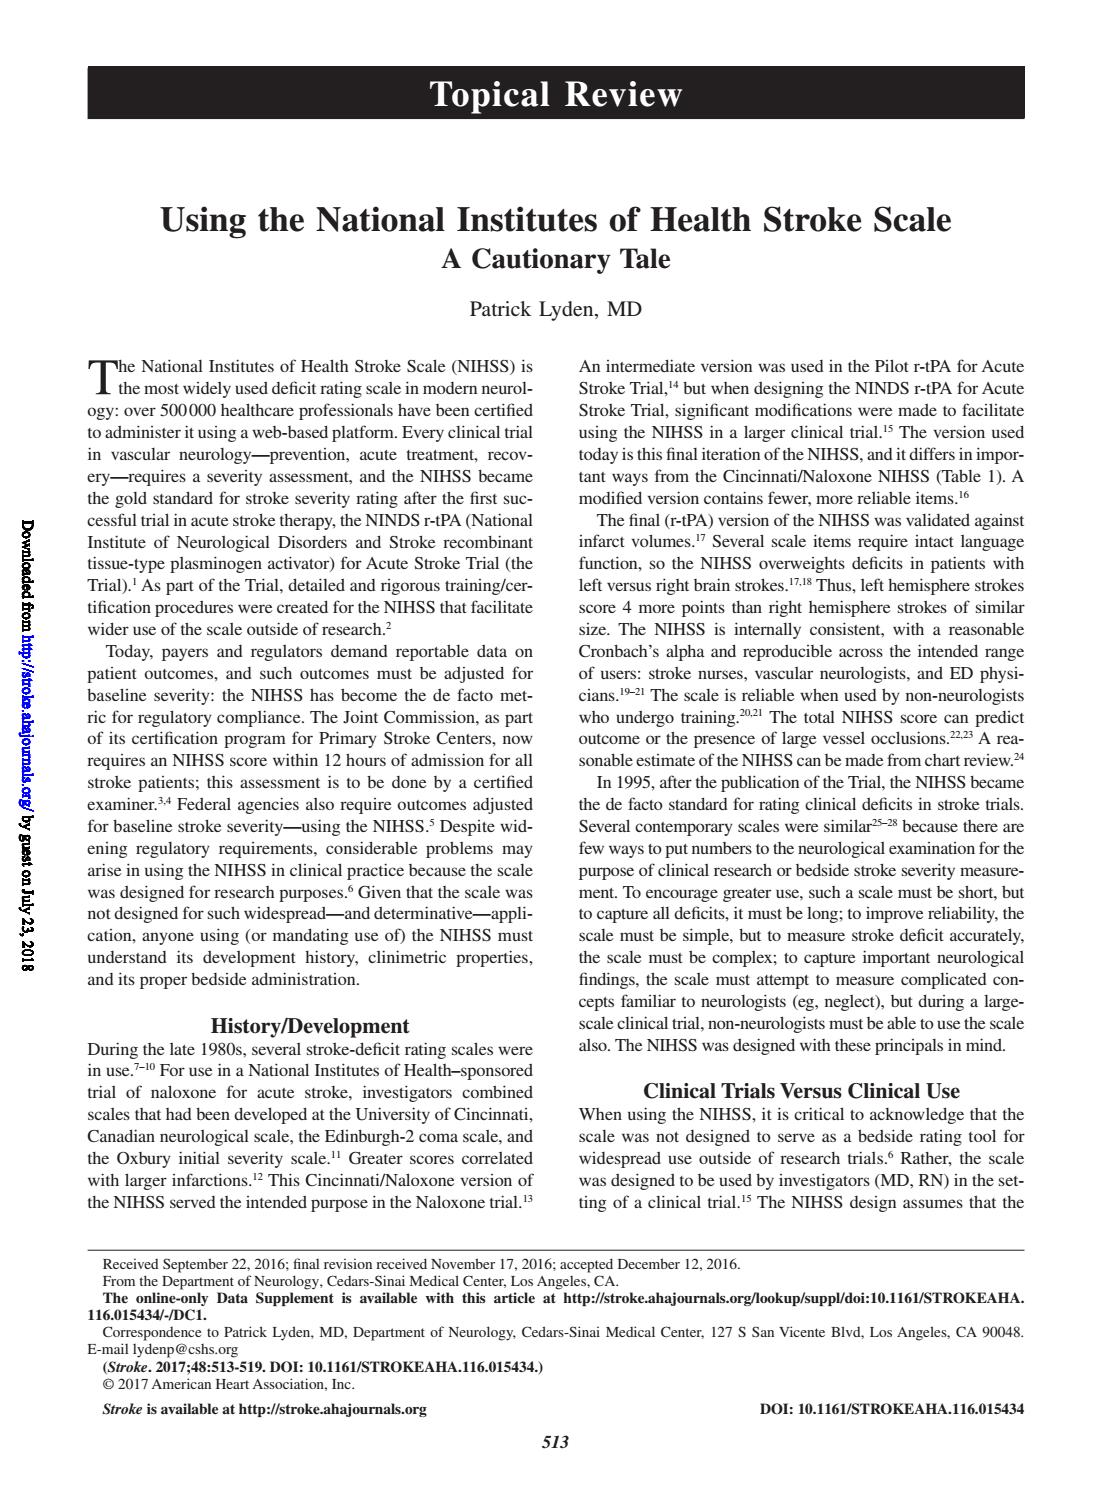 Using The National Institutes Of Health Stroke Scale A Cautionary